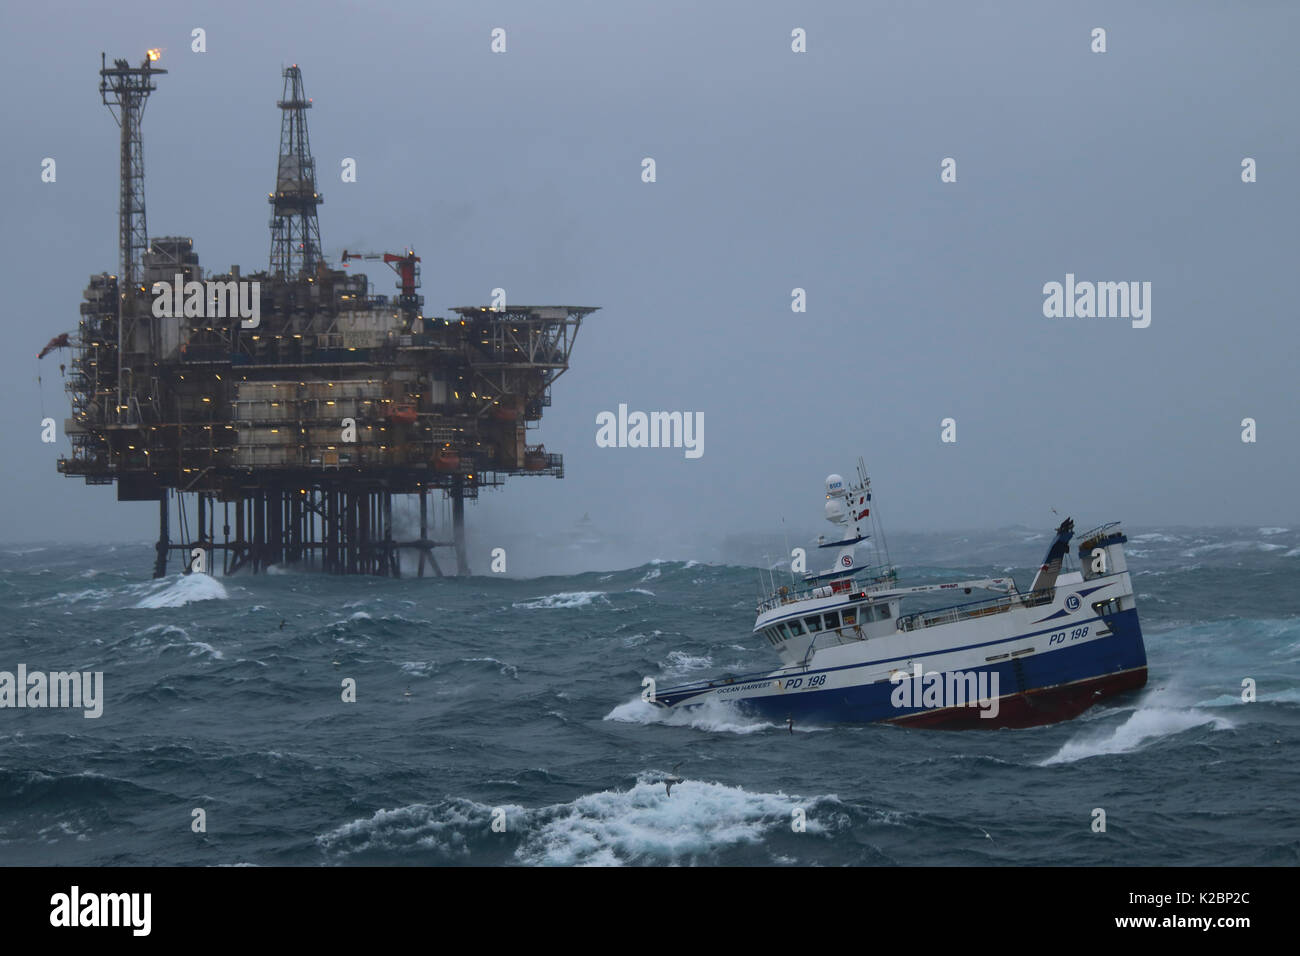 Fishing vessel 'Ocean Harvest' in close proximity to Forties Delta Platform, North Sea, January 2016. - Stock Image